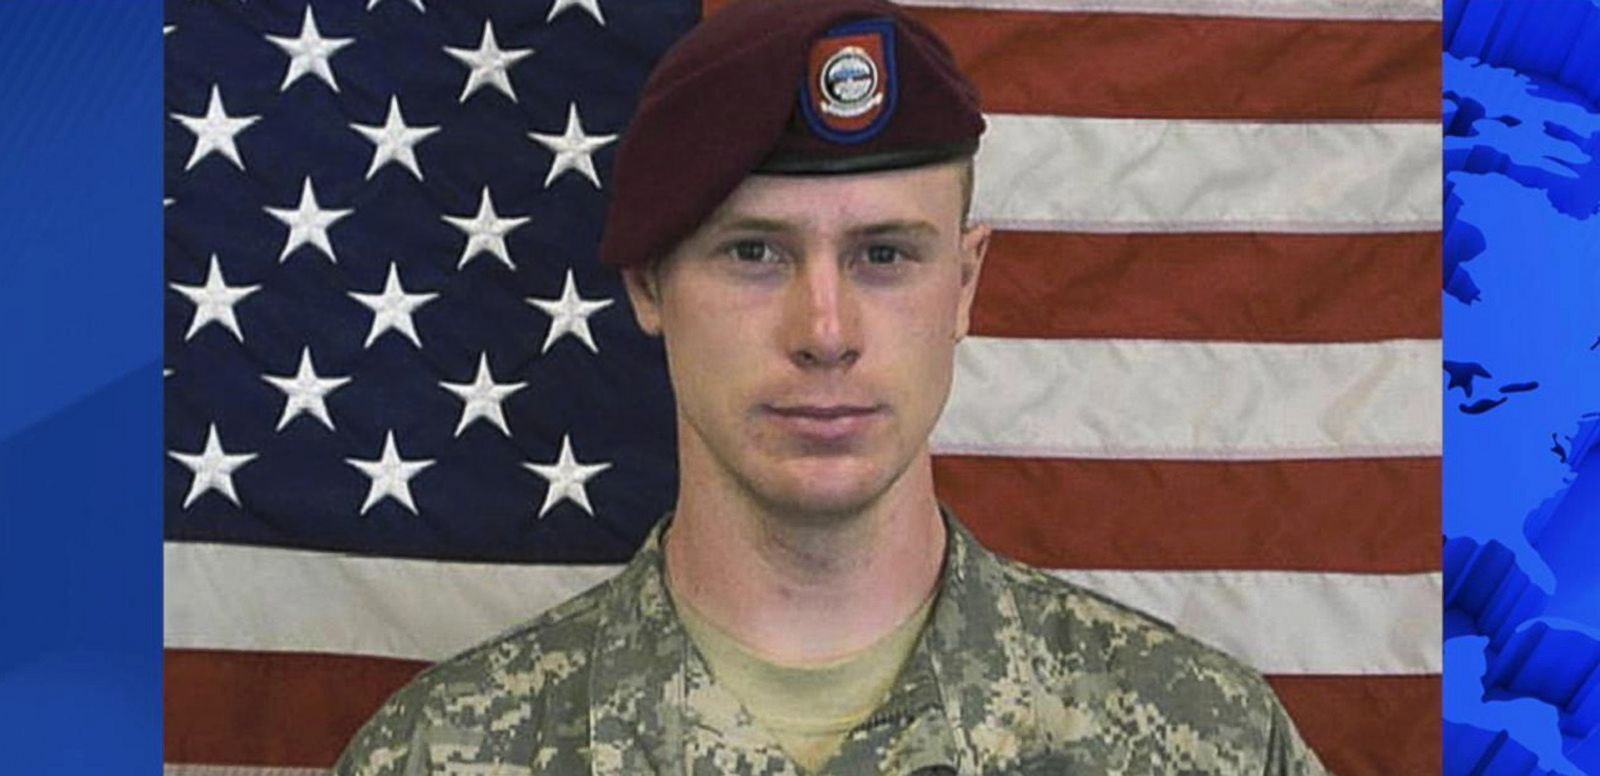 VIDEO: Pentagon Denies Sgt. Bowe Bergdahl Report.